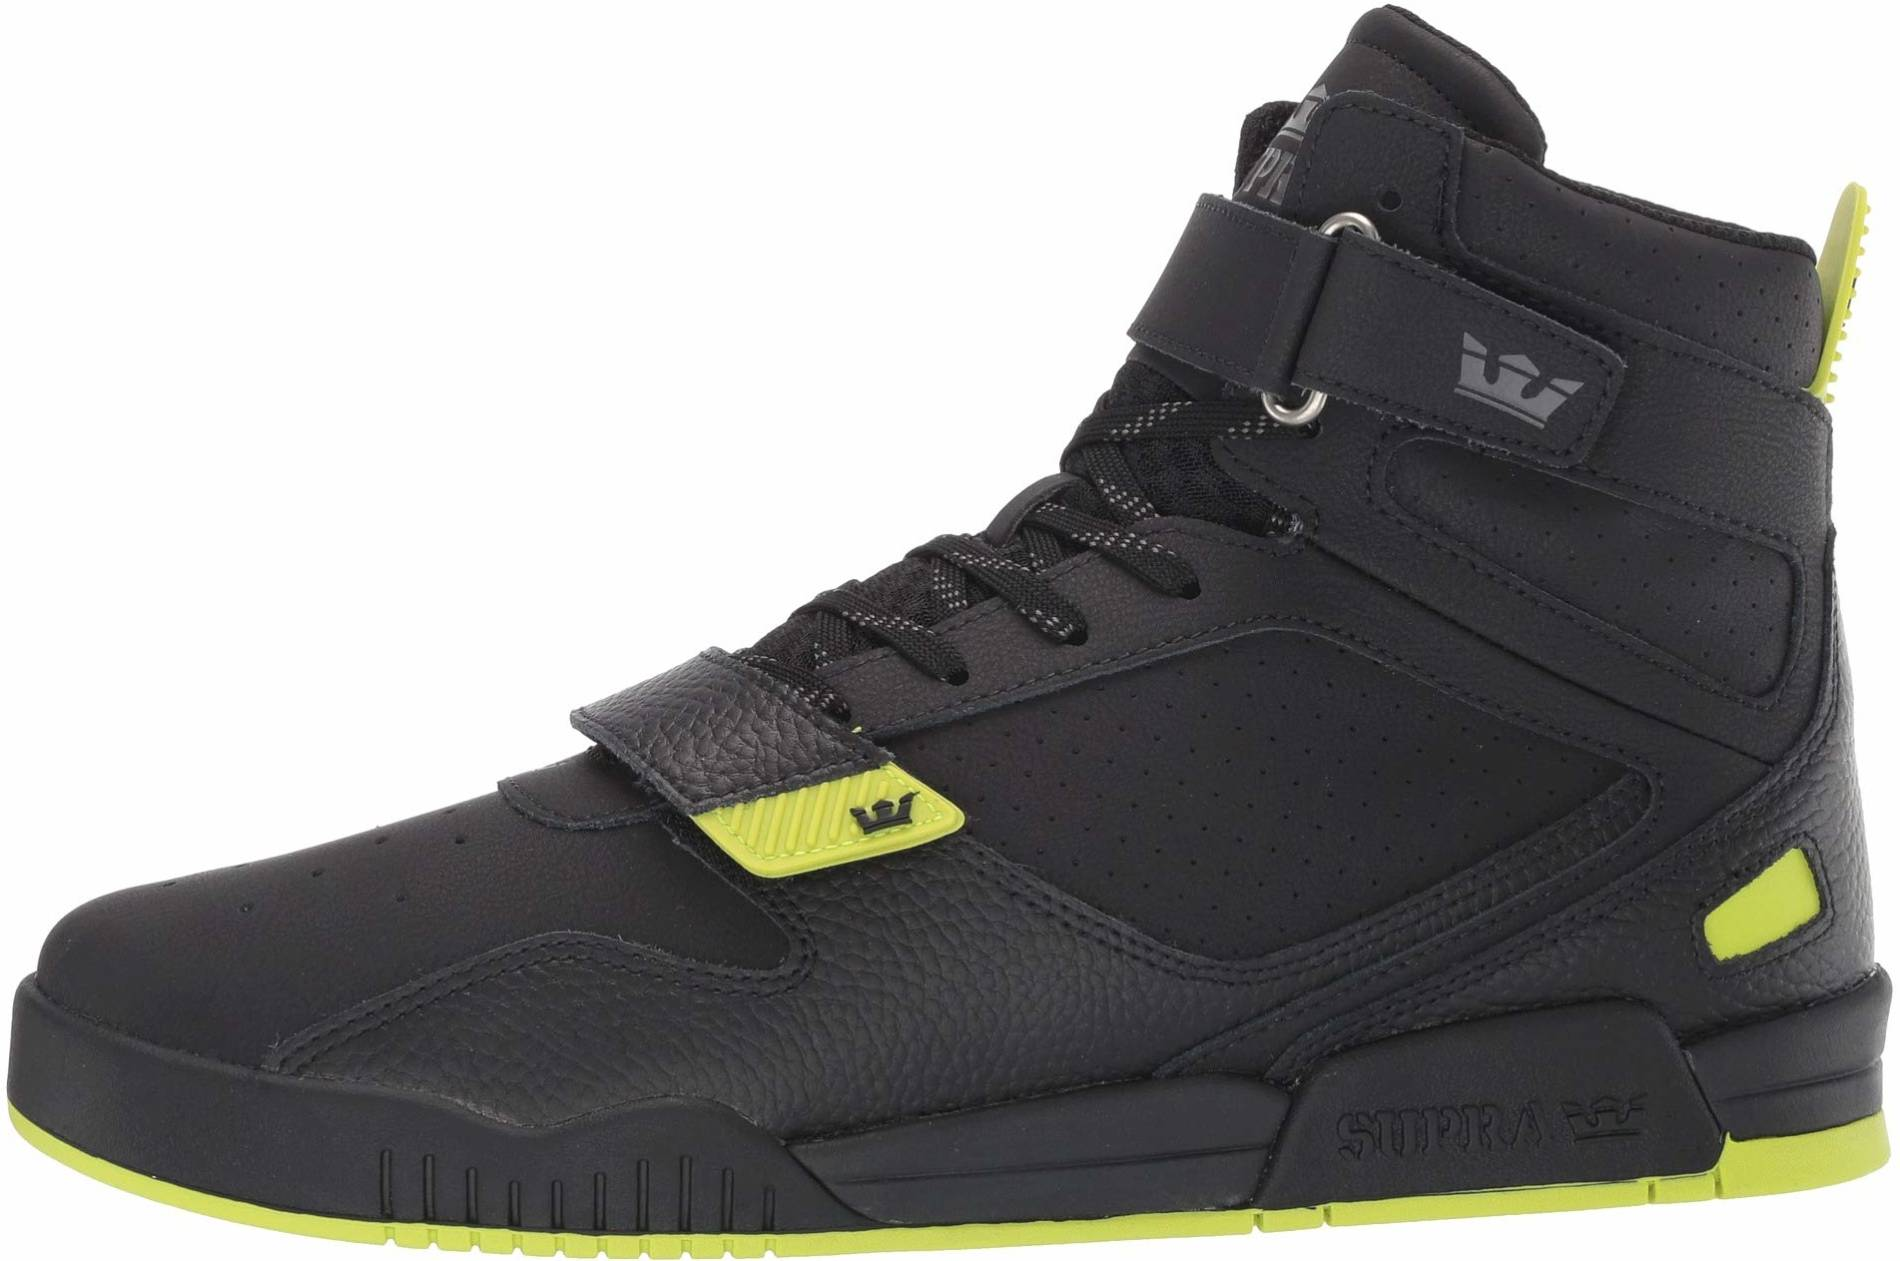 Only $60 + Review of Supra Breaker